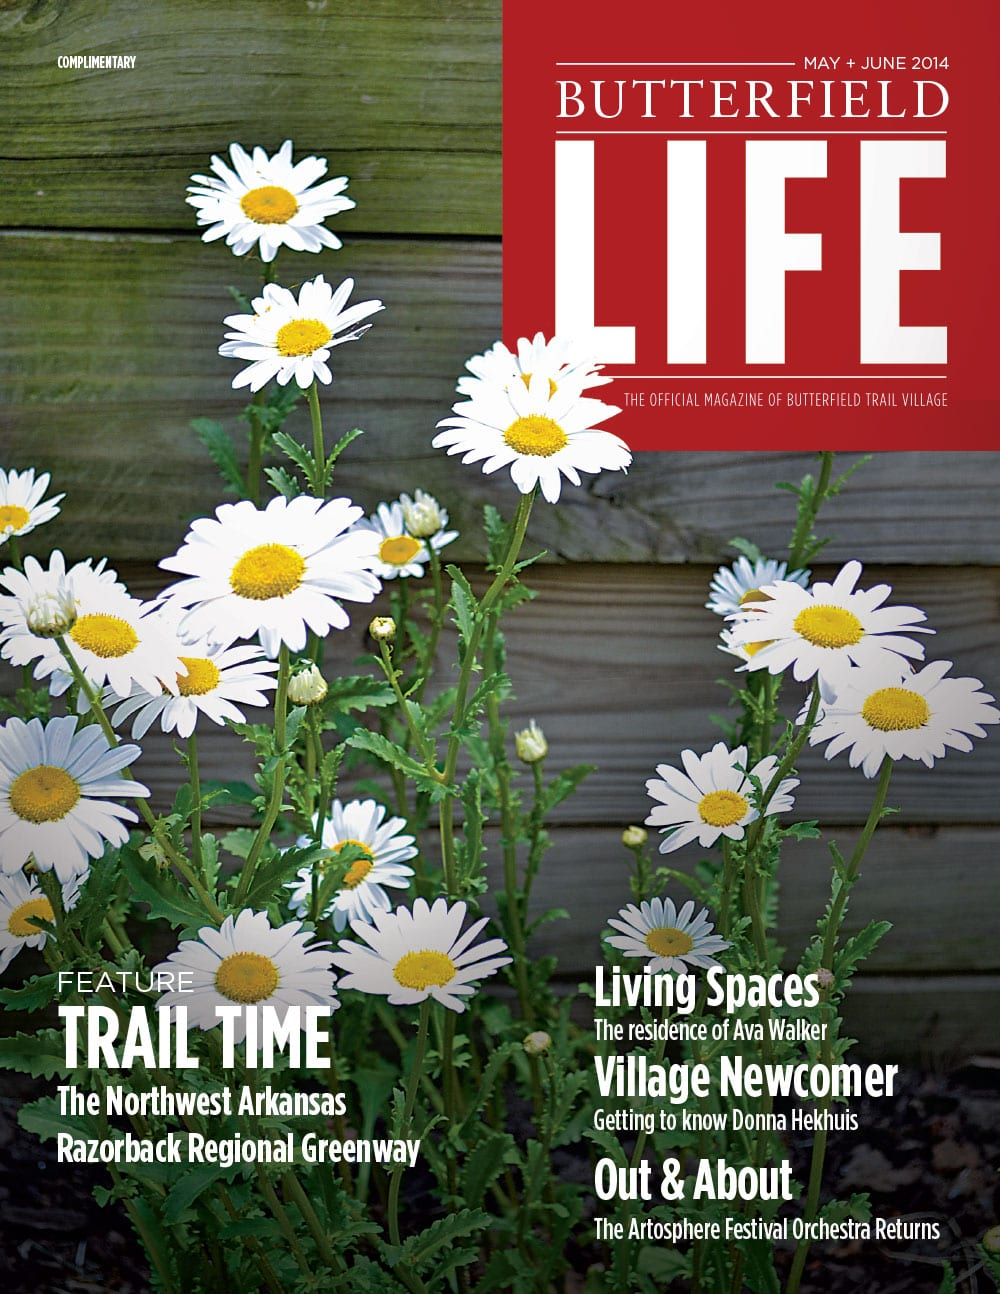 butterfield-life_may-jun2014_cover